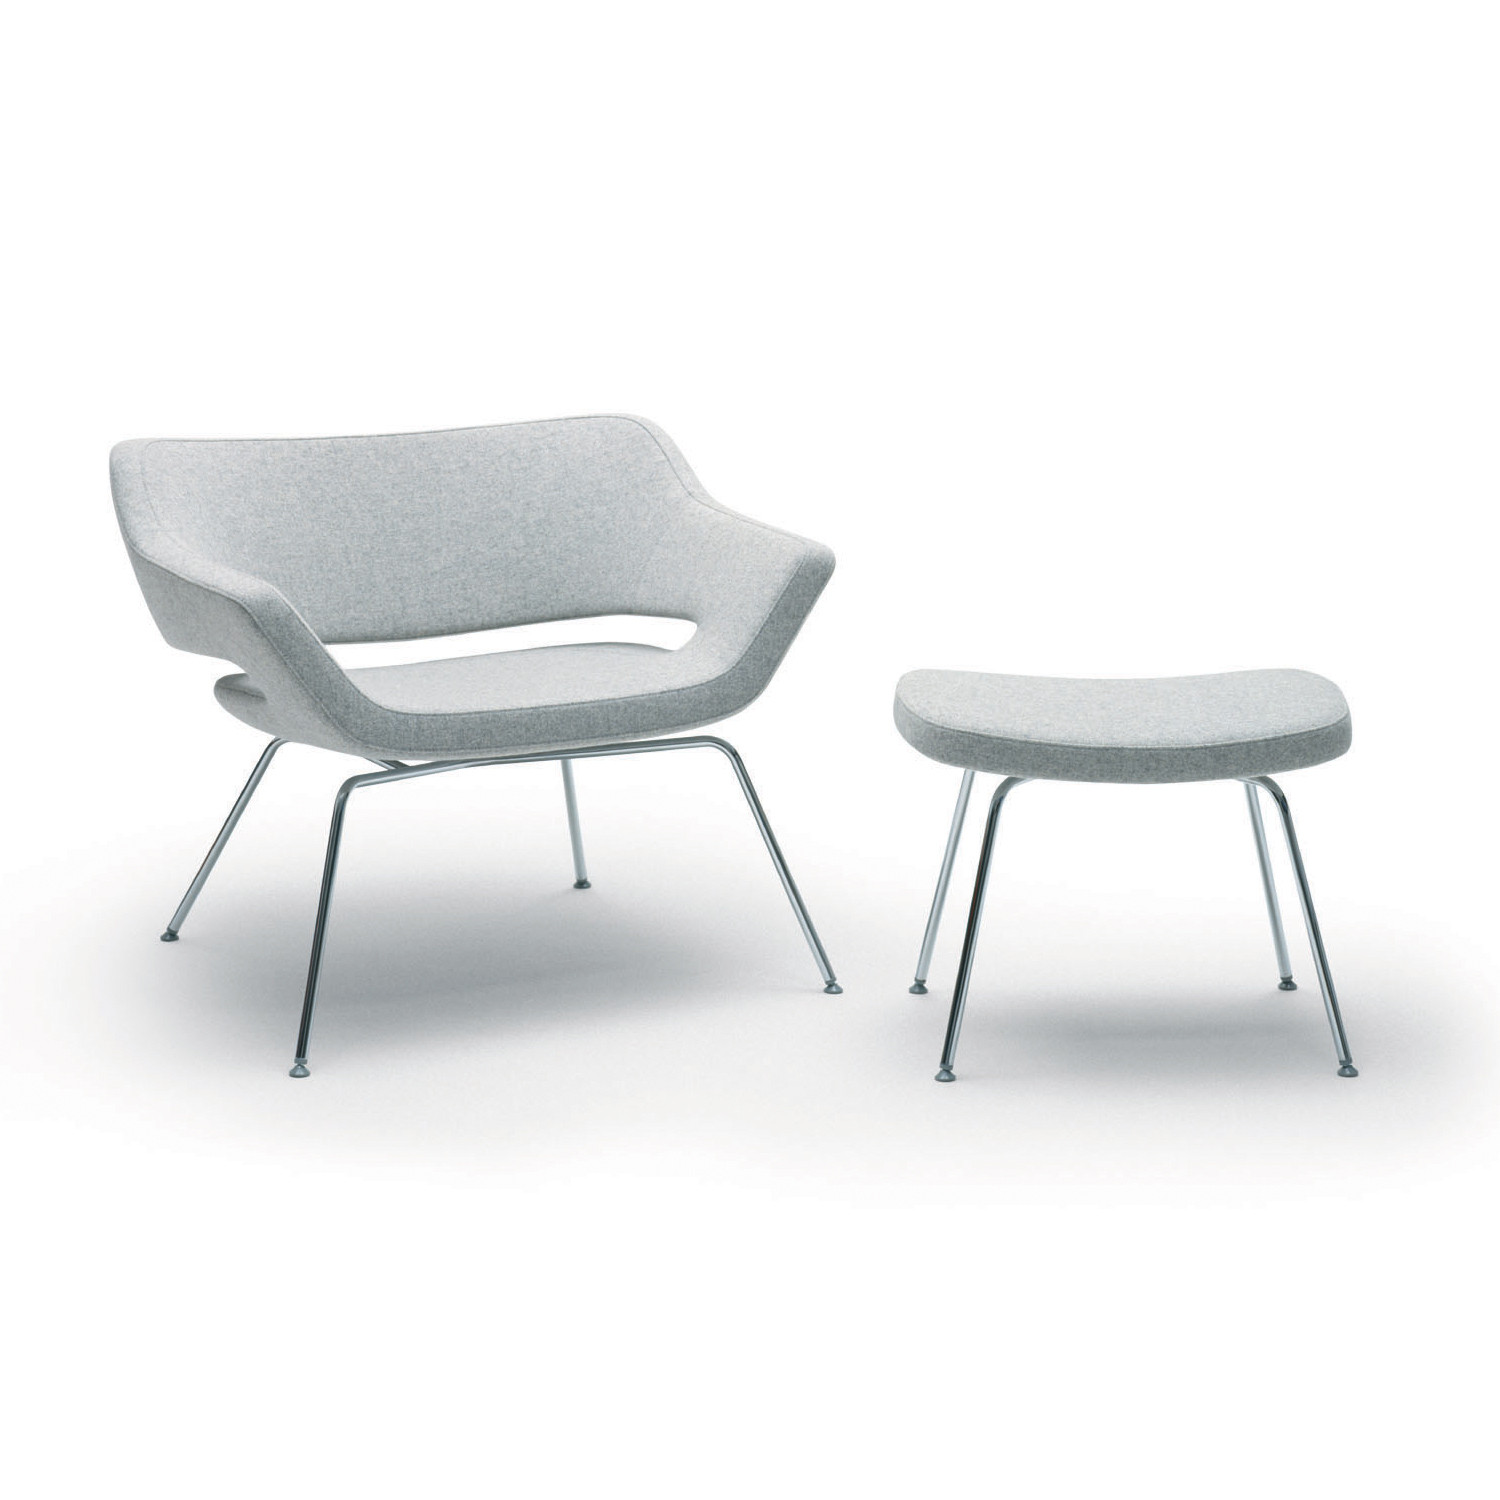 Hm85 Armchair and Foot Stool